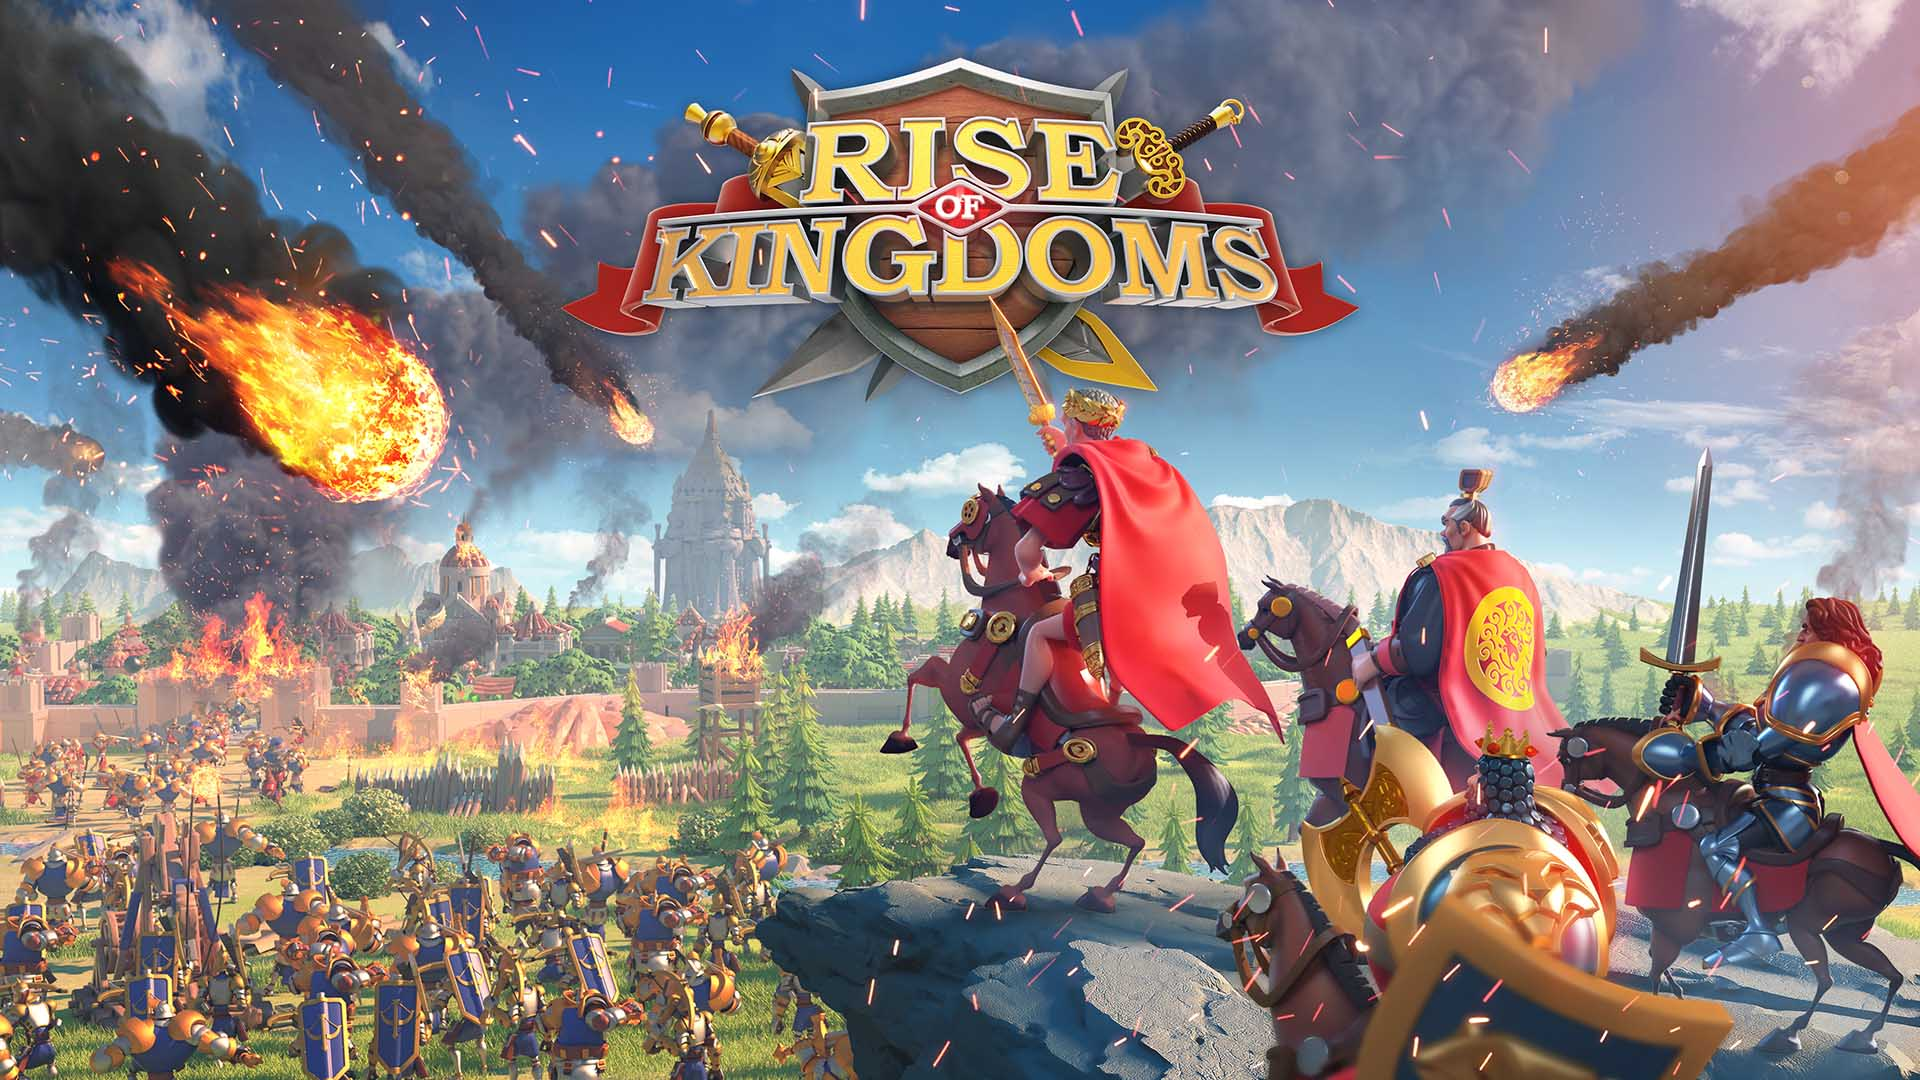 rise-of-Kingdoms-Lost-Crusade-Game